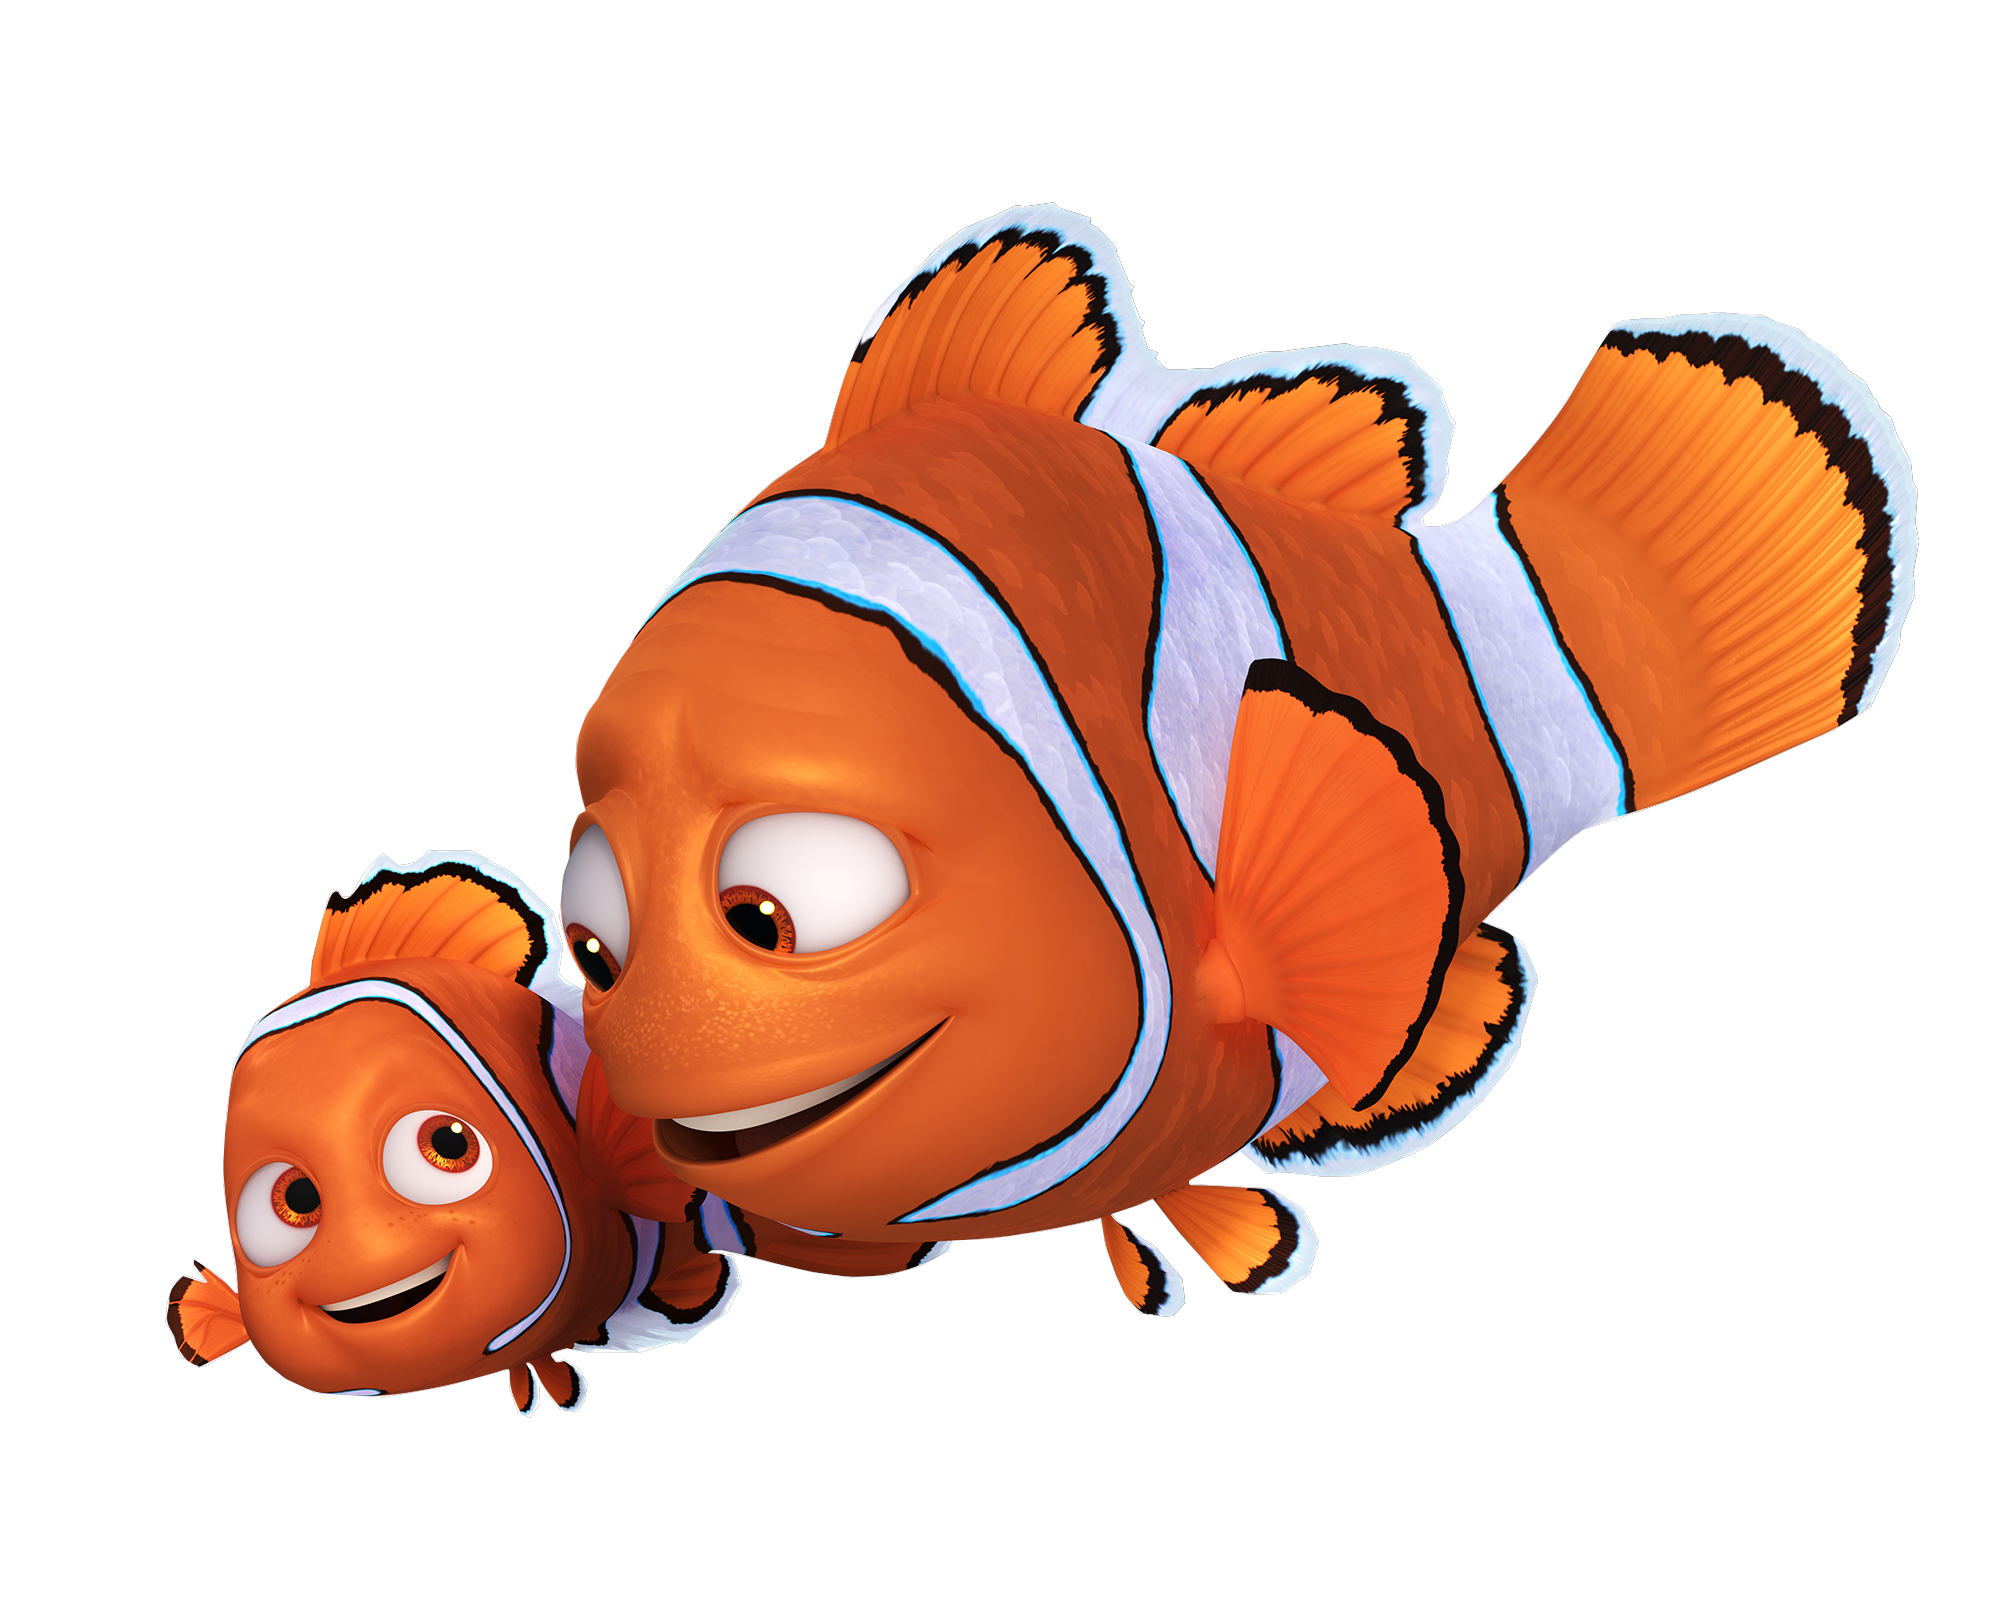 Dory y nemo png. Image and marlin in